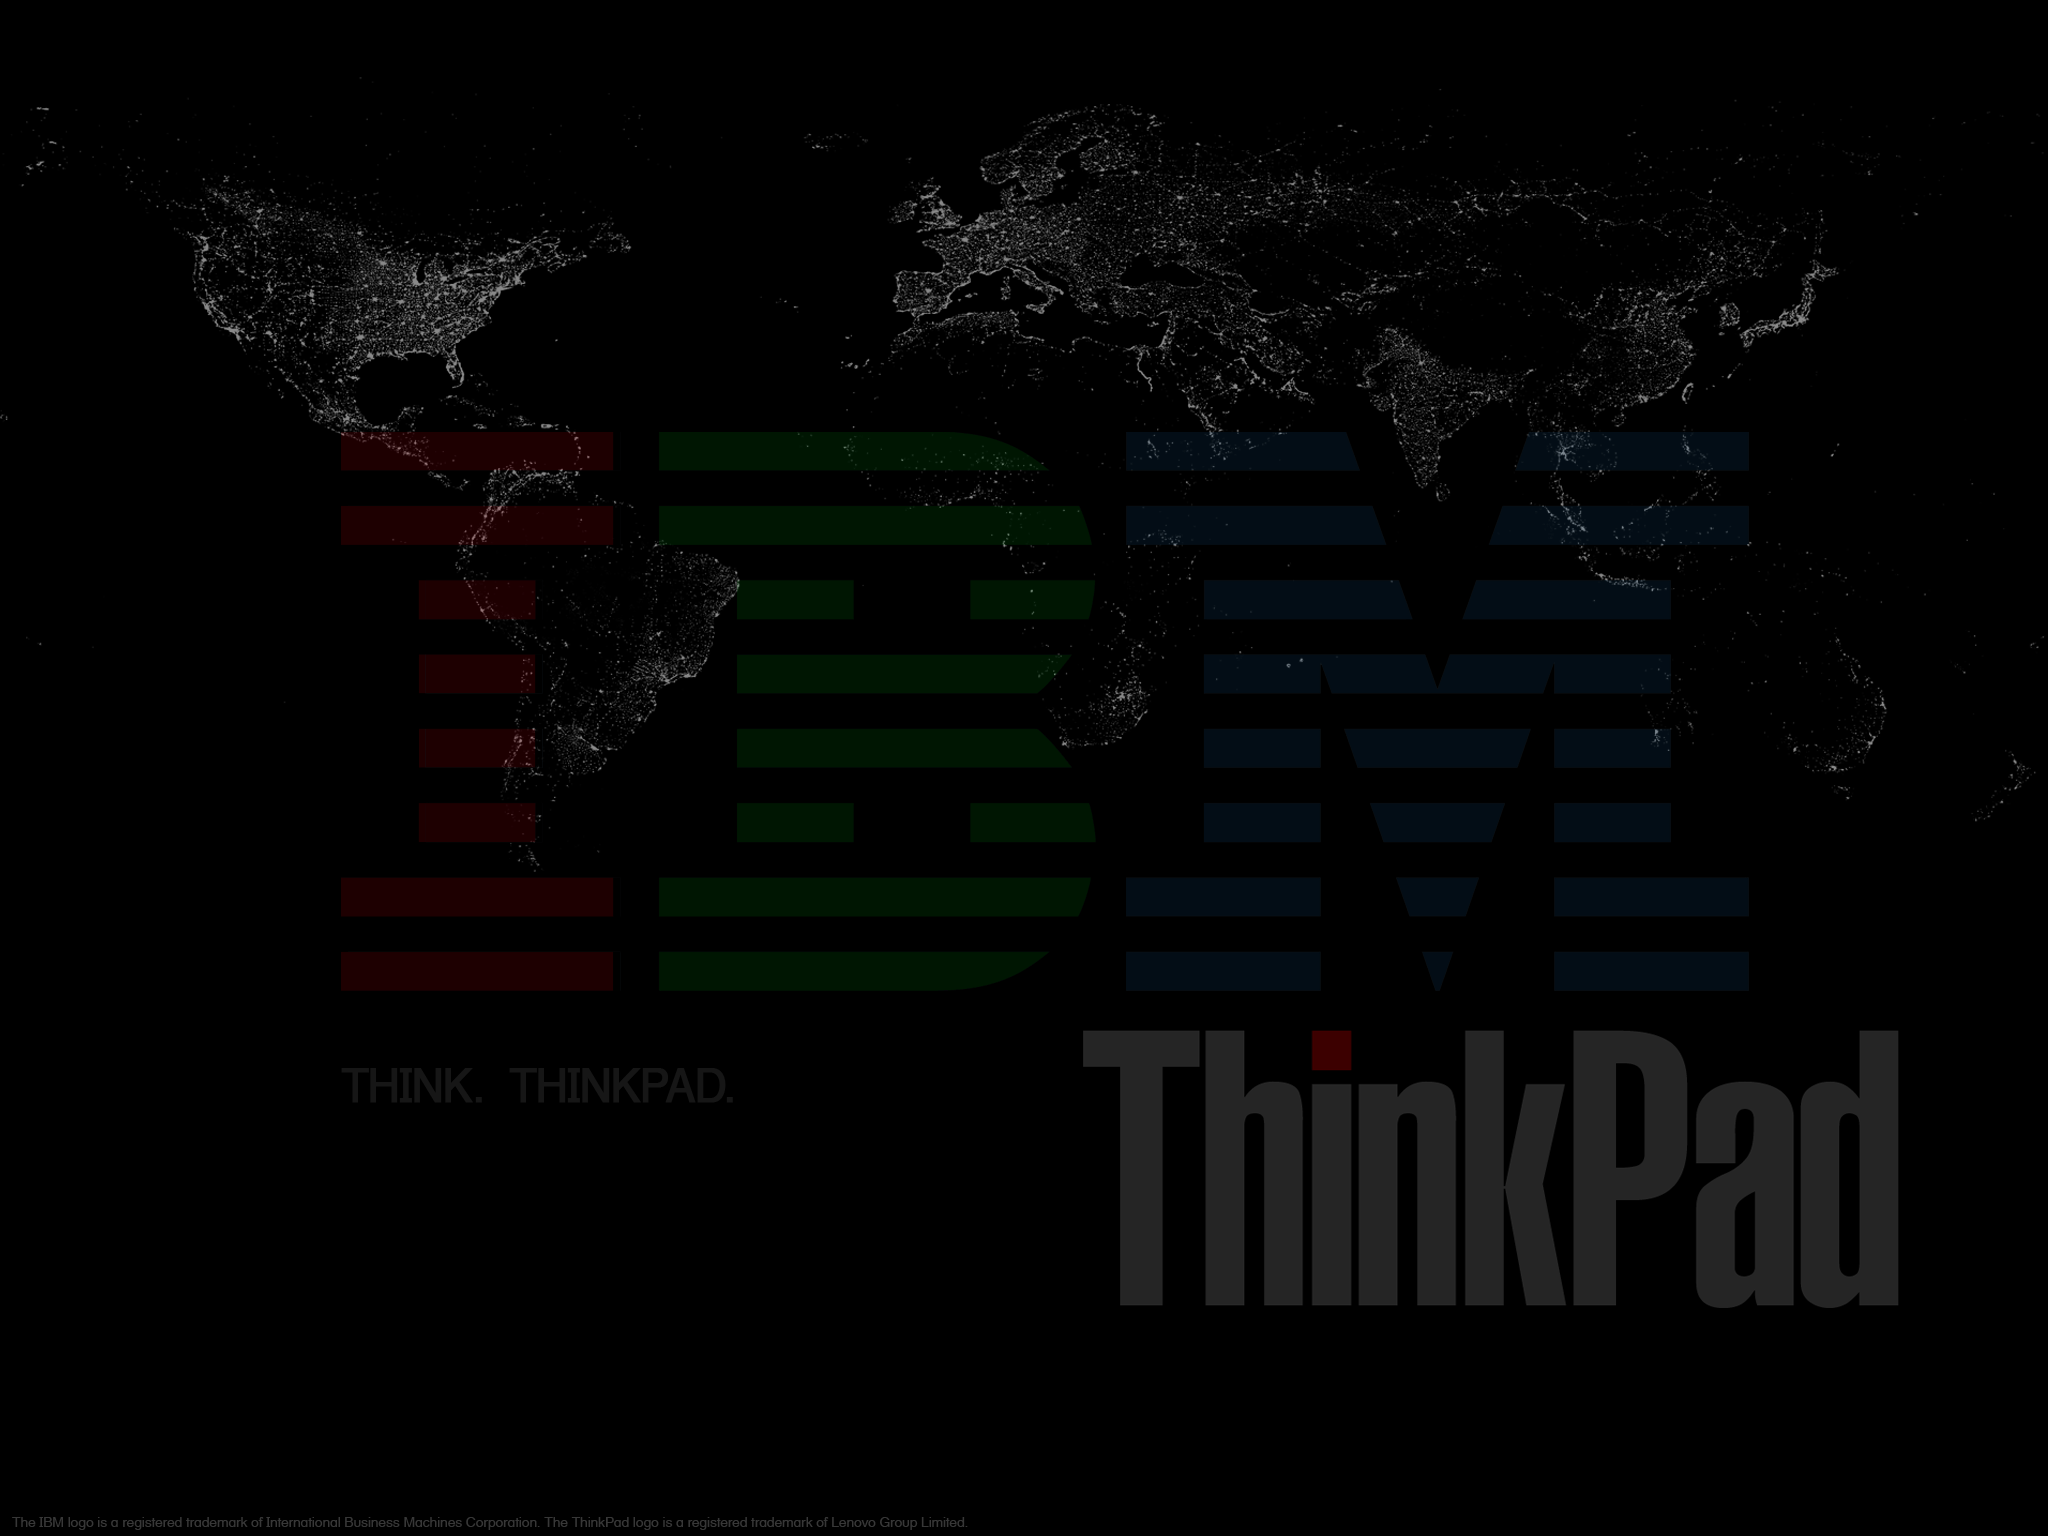 Ibm Thinkpad Wallpapers Wallpaper Cave